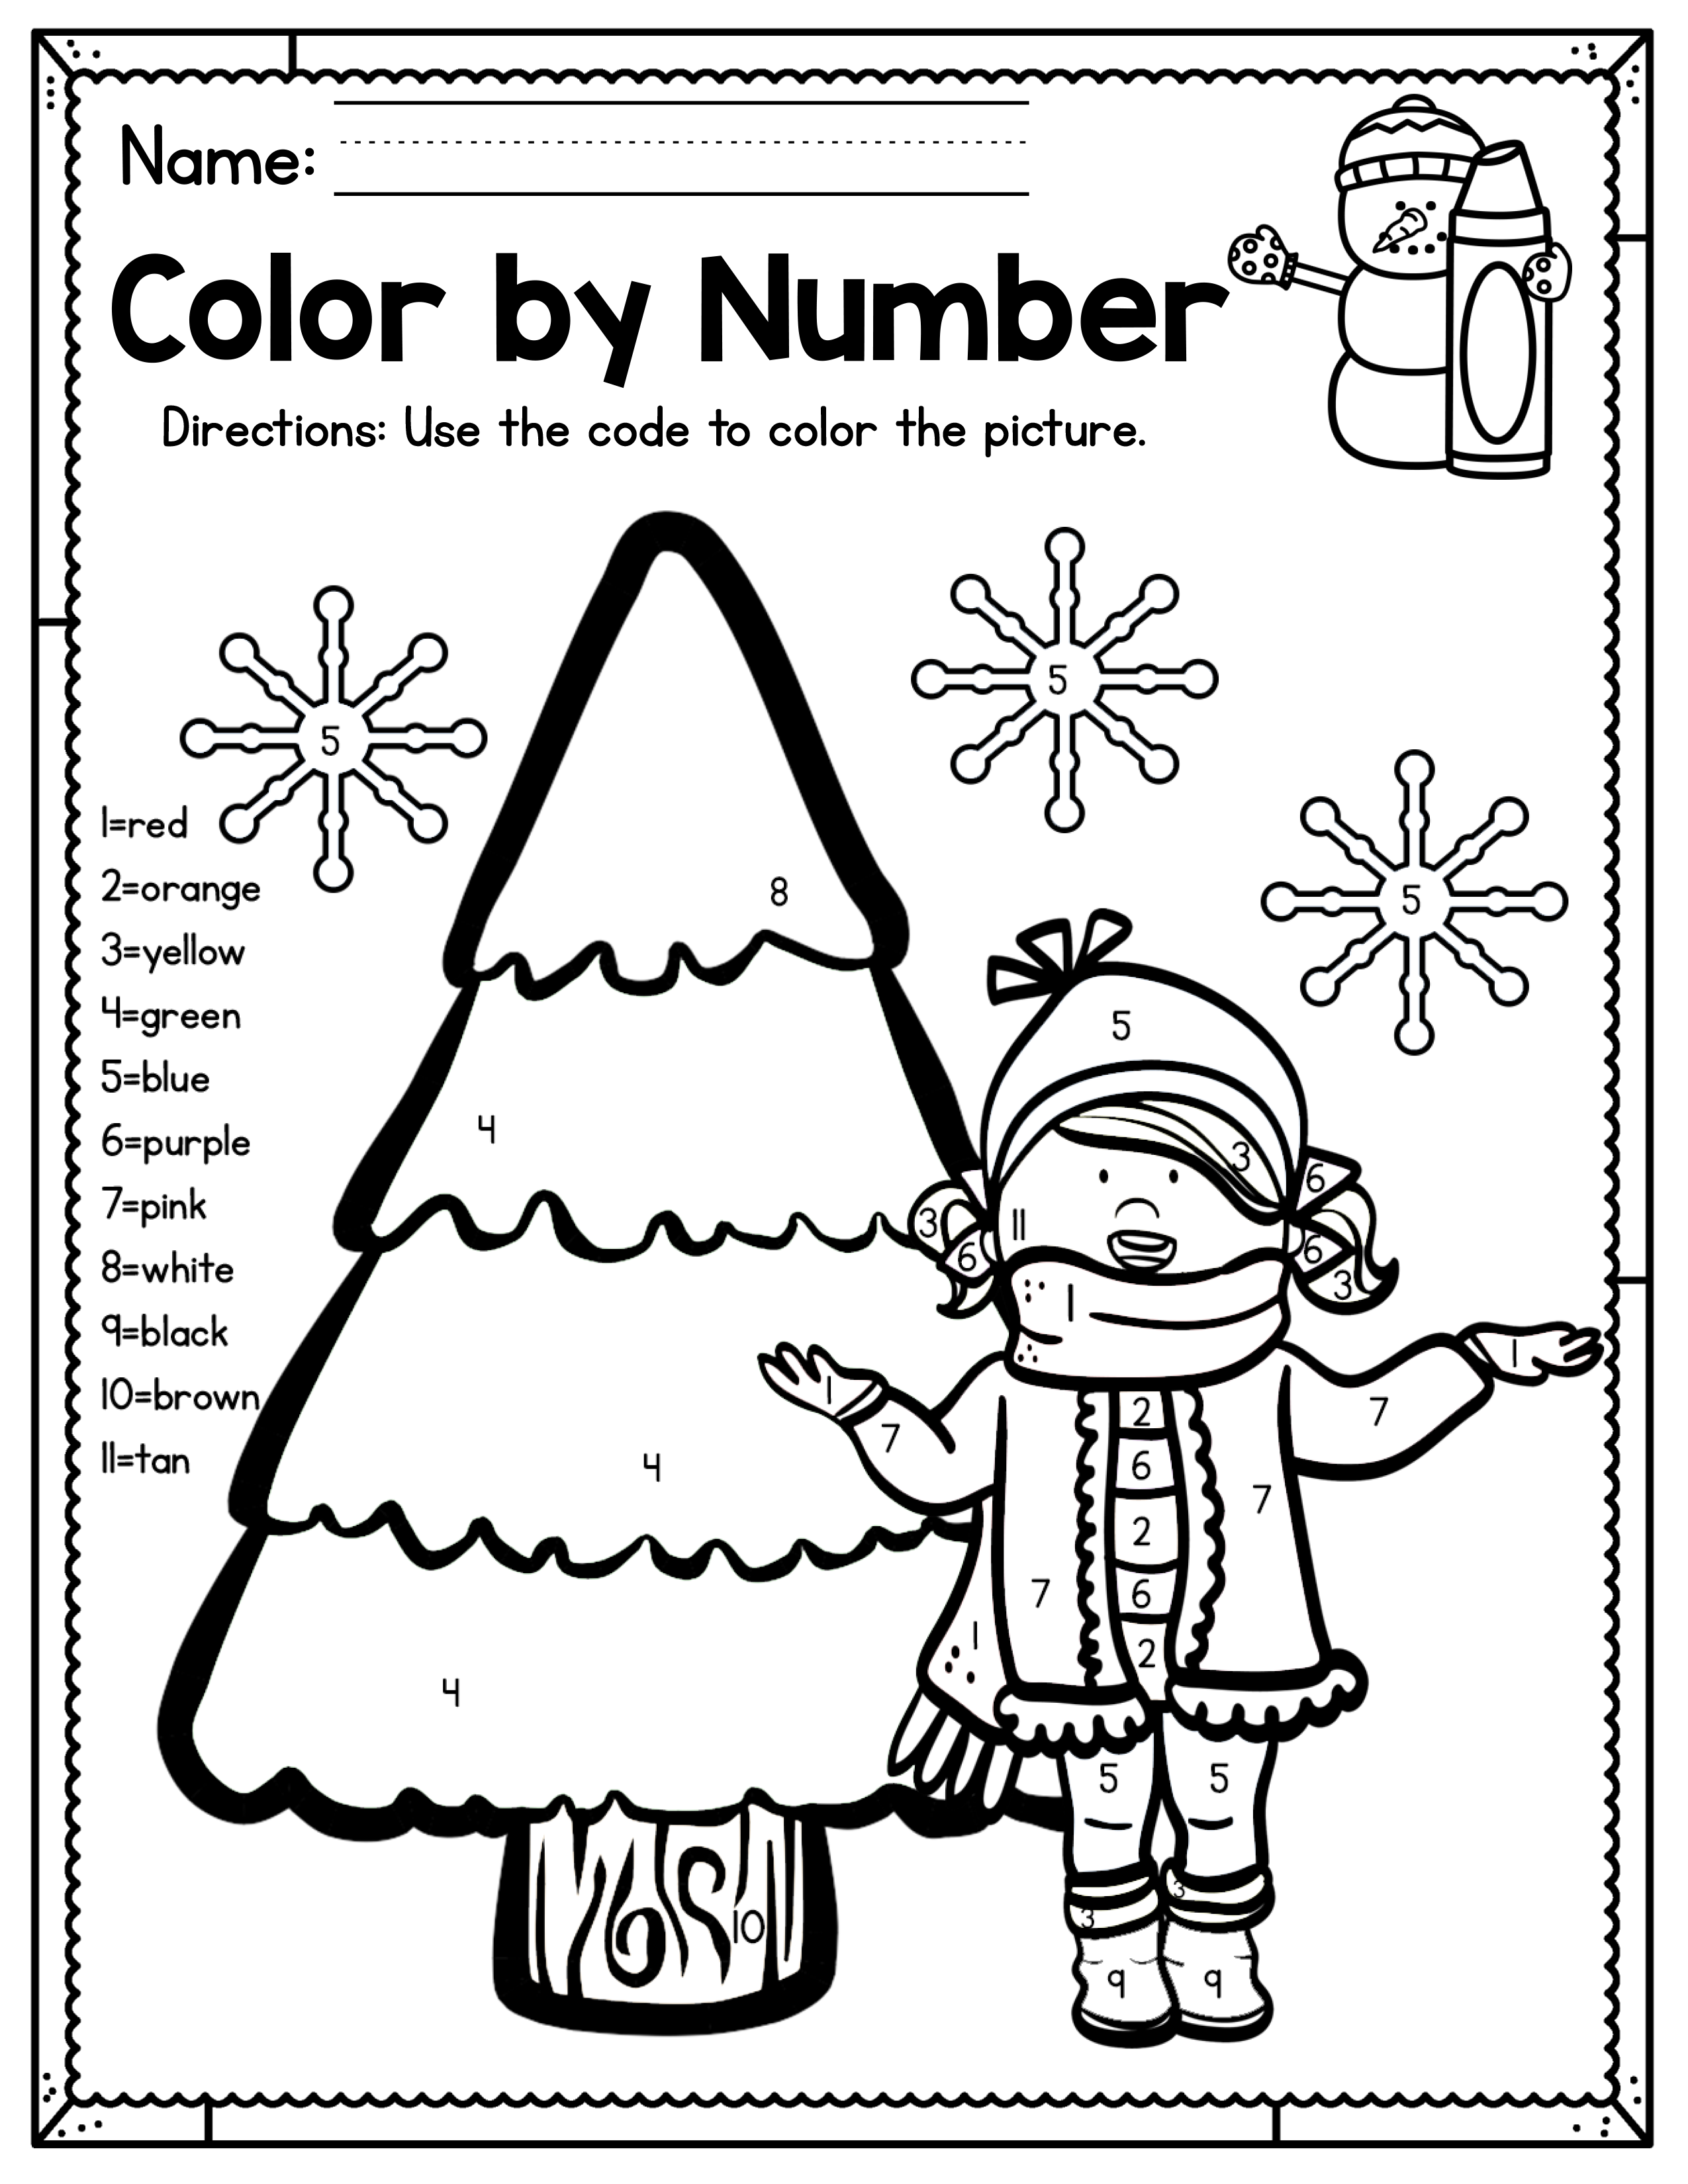 It's just an image of Printable Color by Number for full page